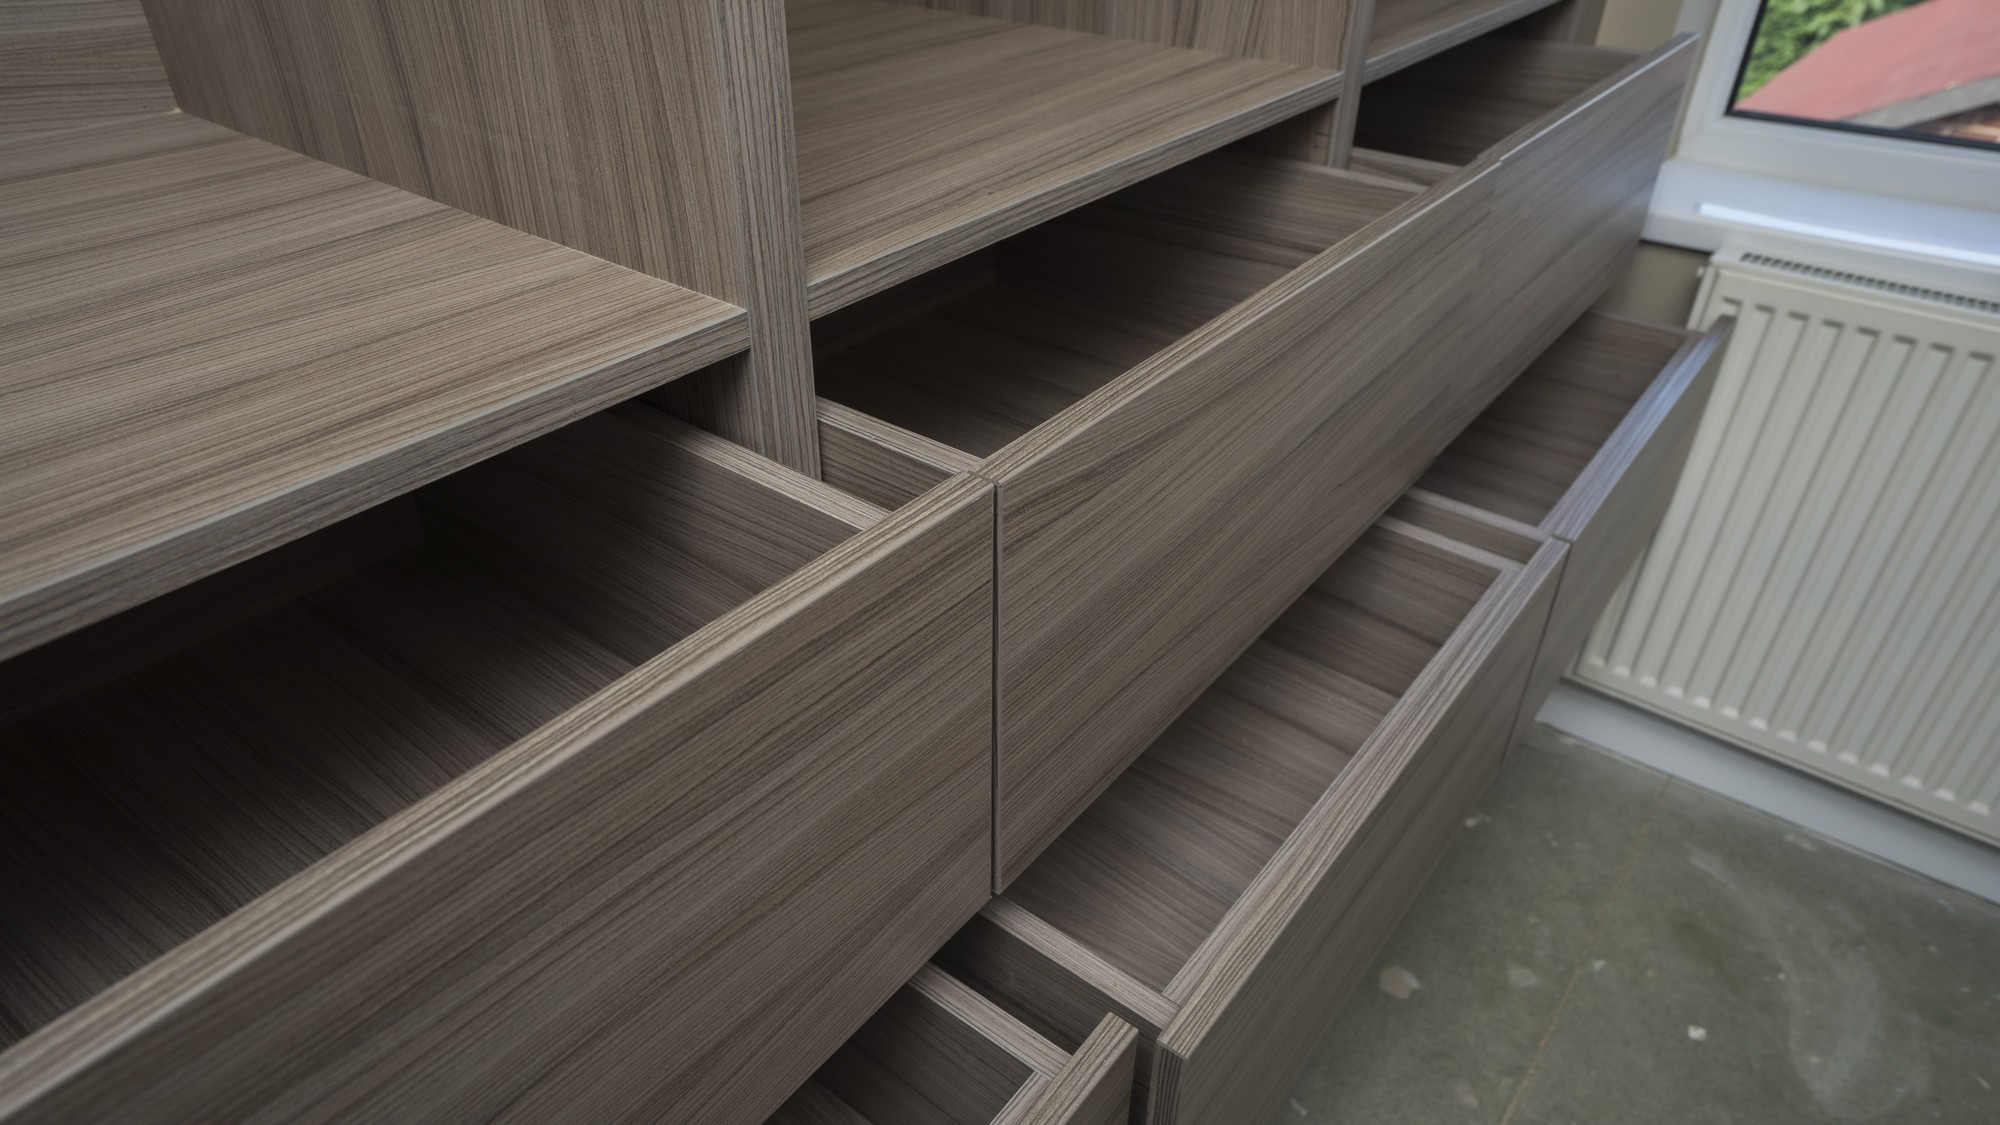 Close up of the 6 drawers on the left side of the walk in wardrobe, Wirral.